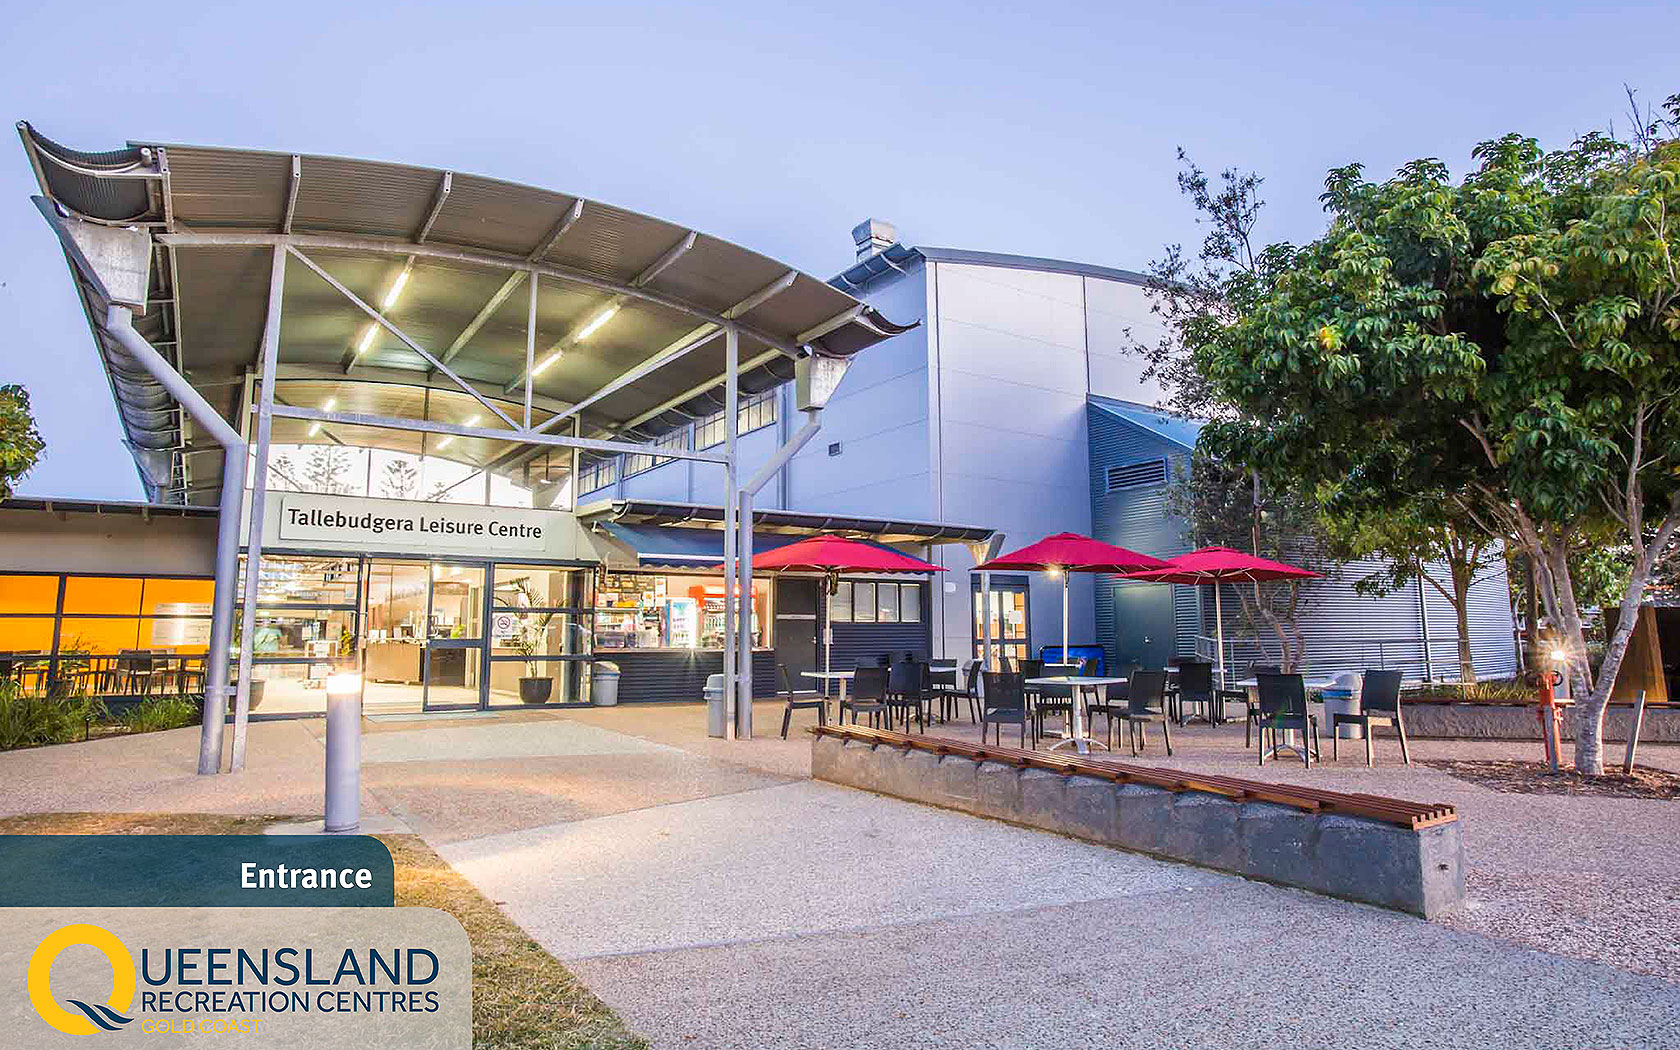 Entrance and Tallabudgera Leisure Centre reception with café and outdoor dining area at the Gold Coast Recreation Centre